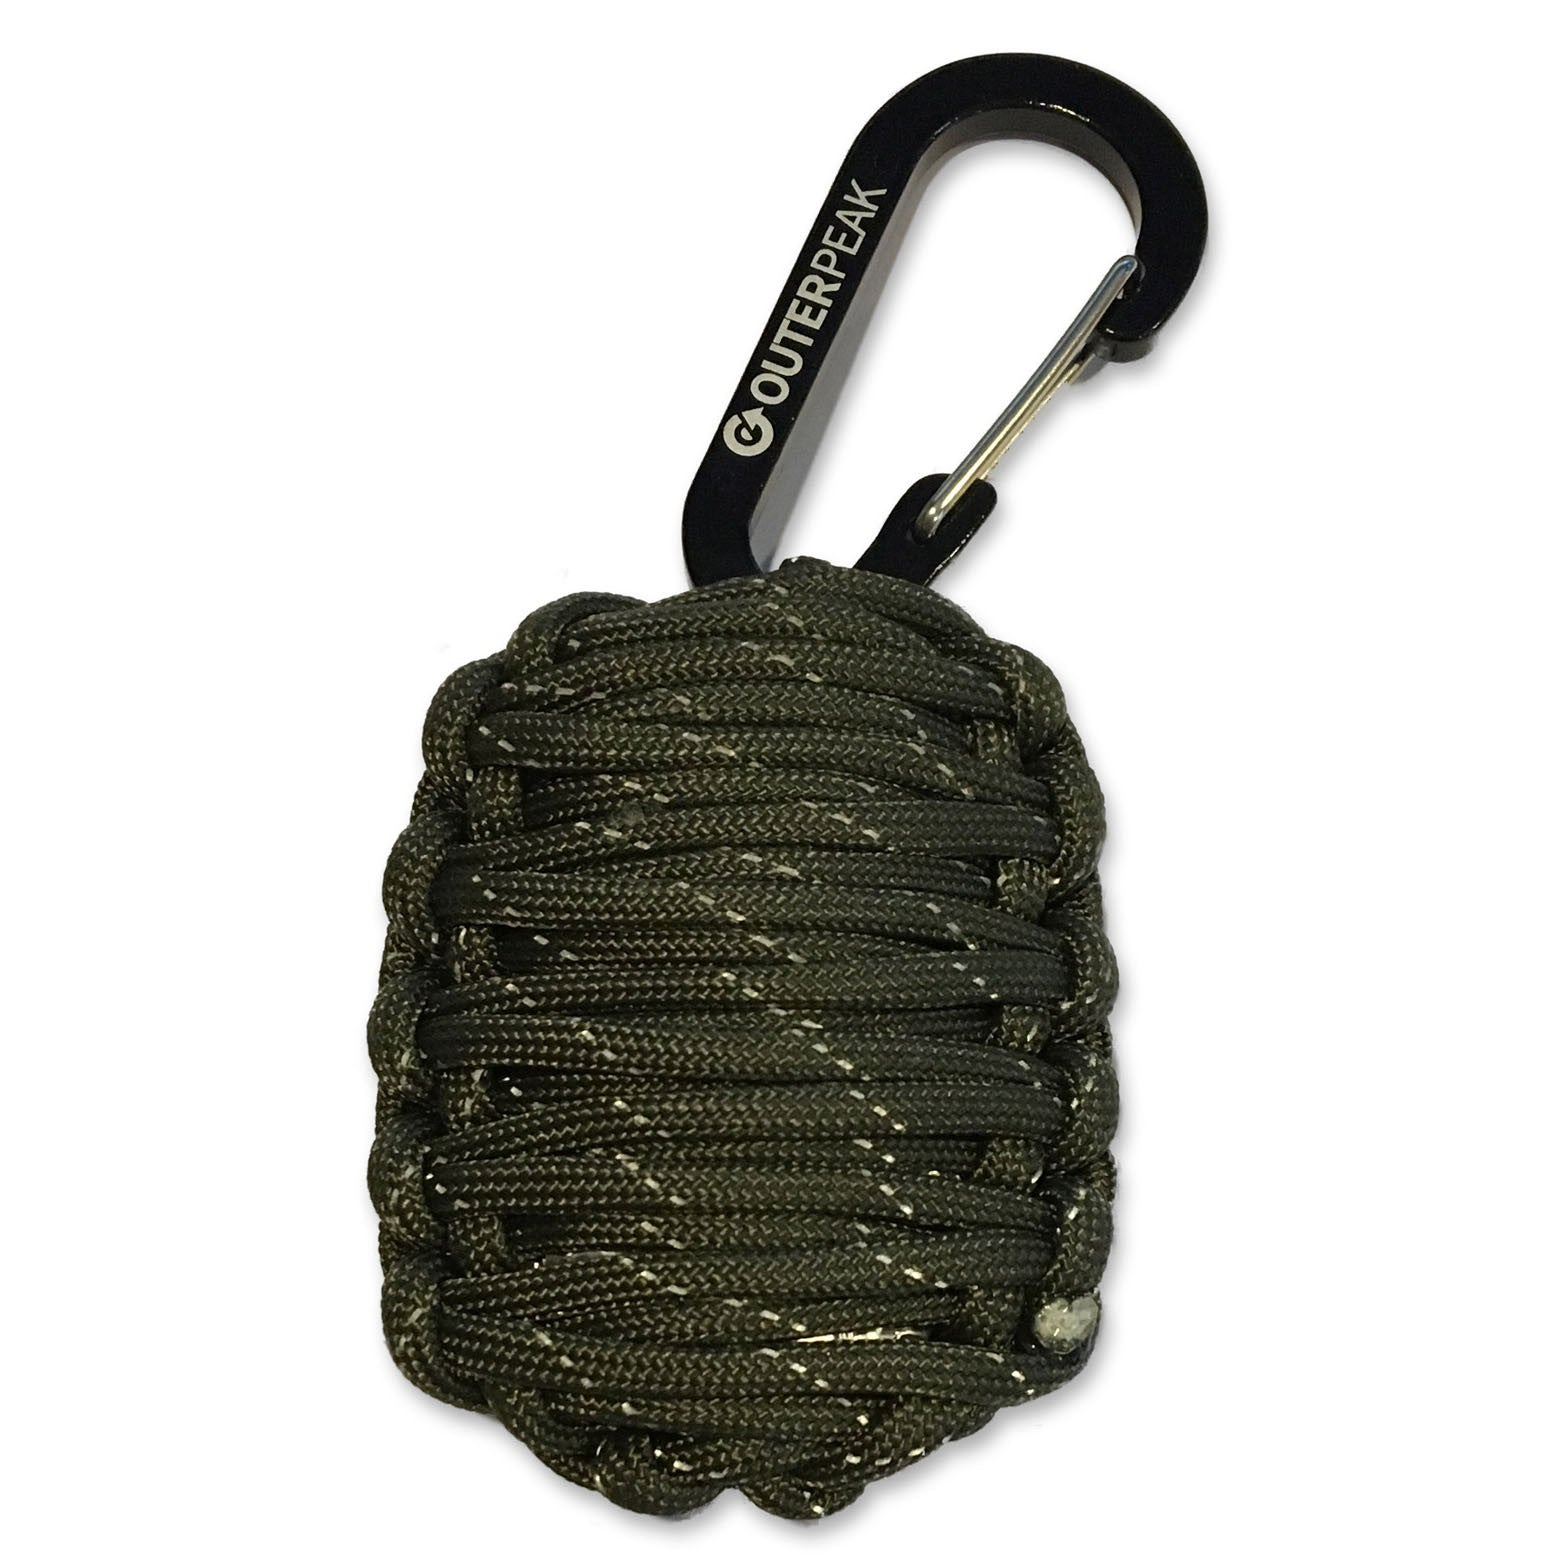 20-Piece Emergency Paracord Survival Kit (Army Green Reflective) - OuterPeak